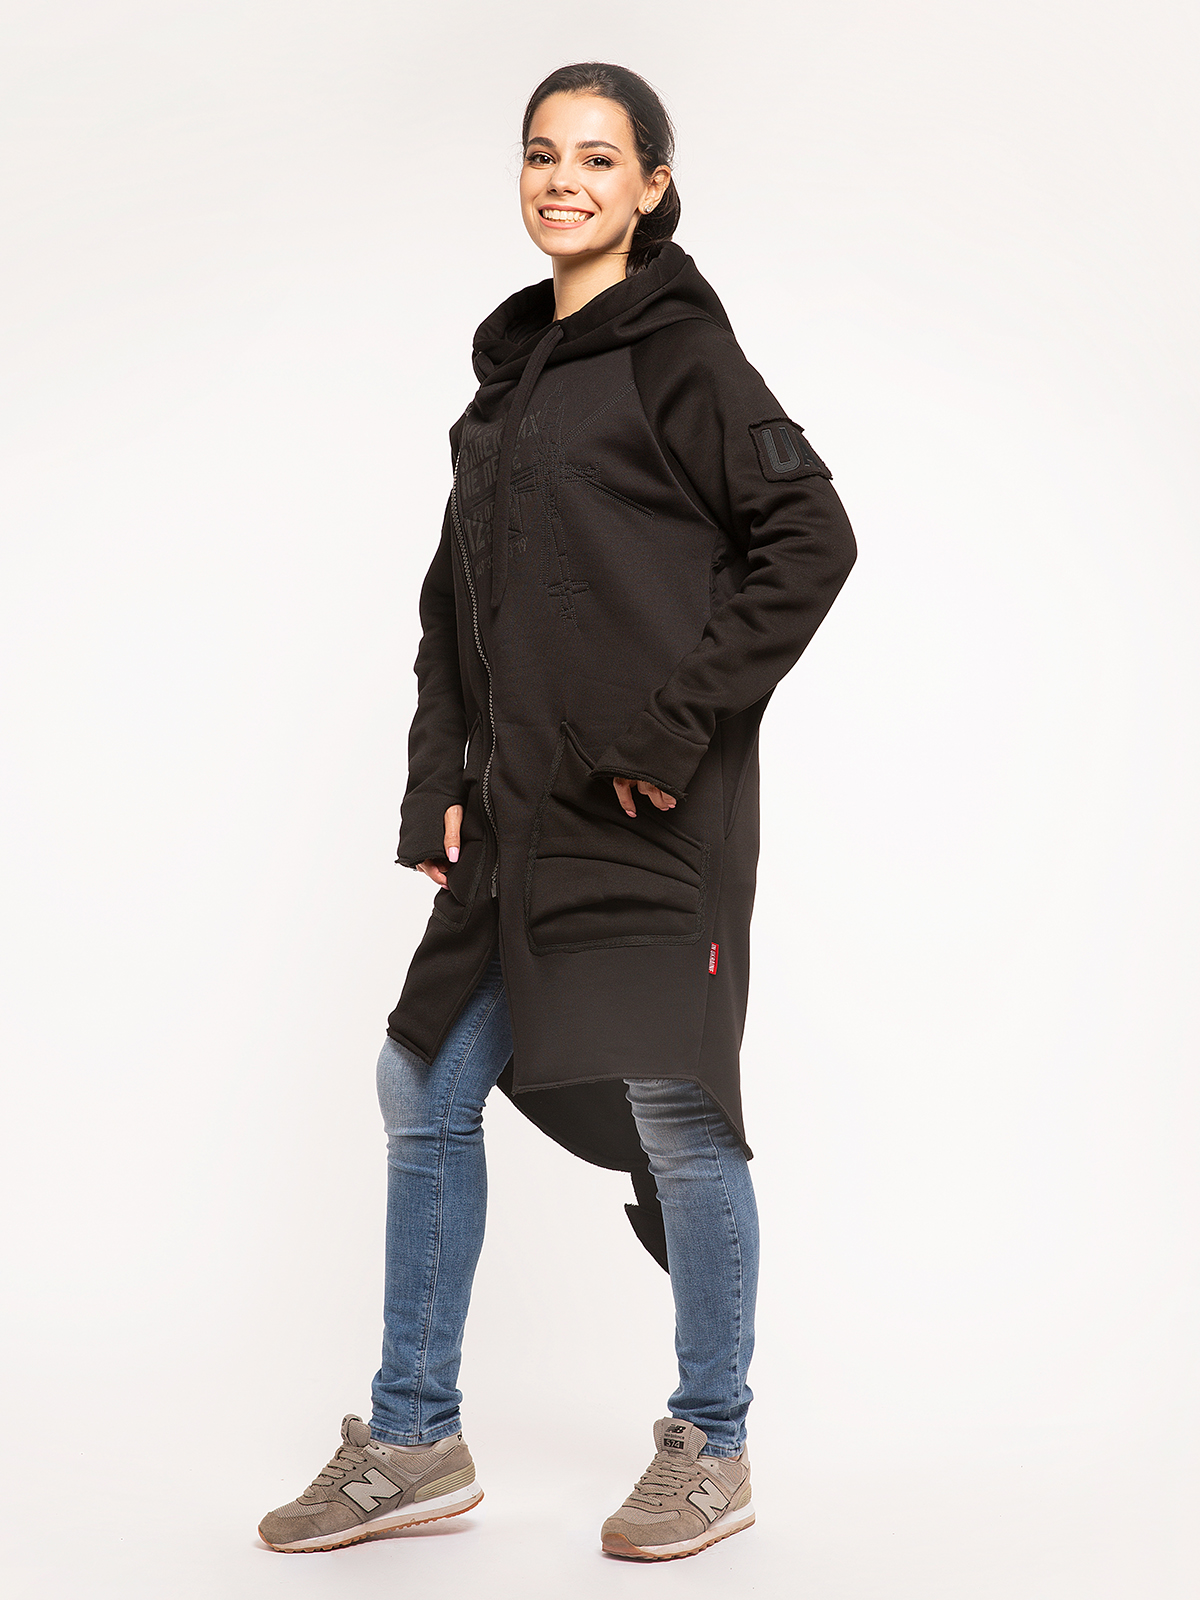 Women's Hoodie Dragon. Color black. 6.